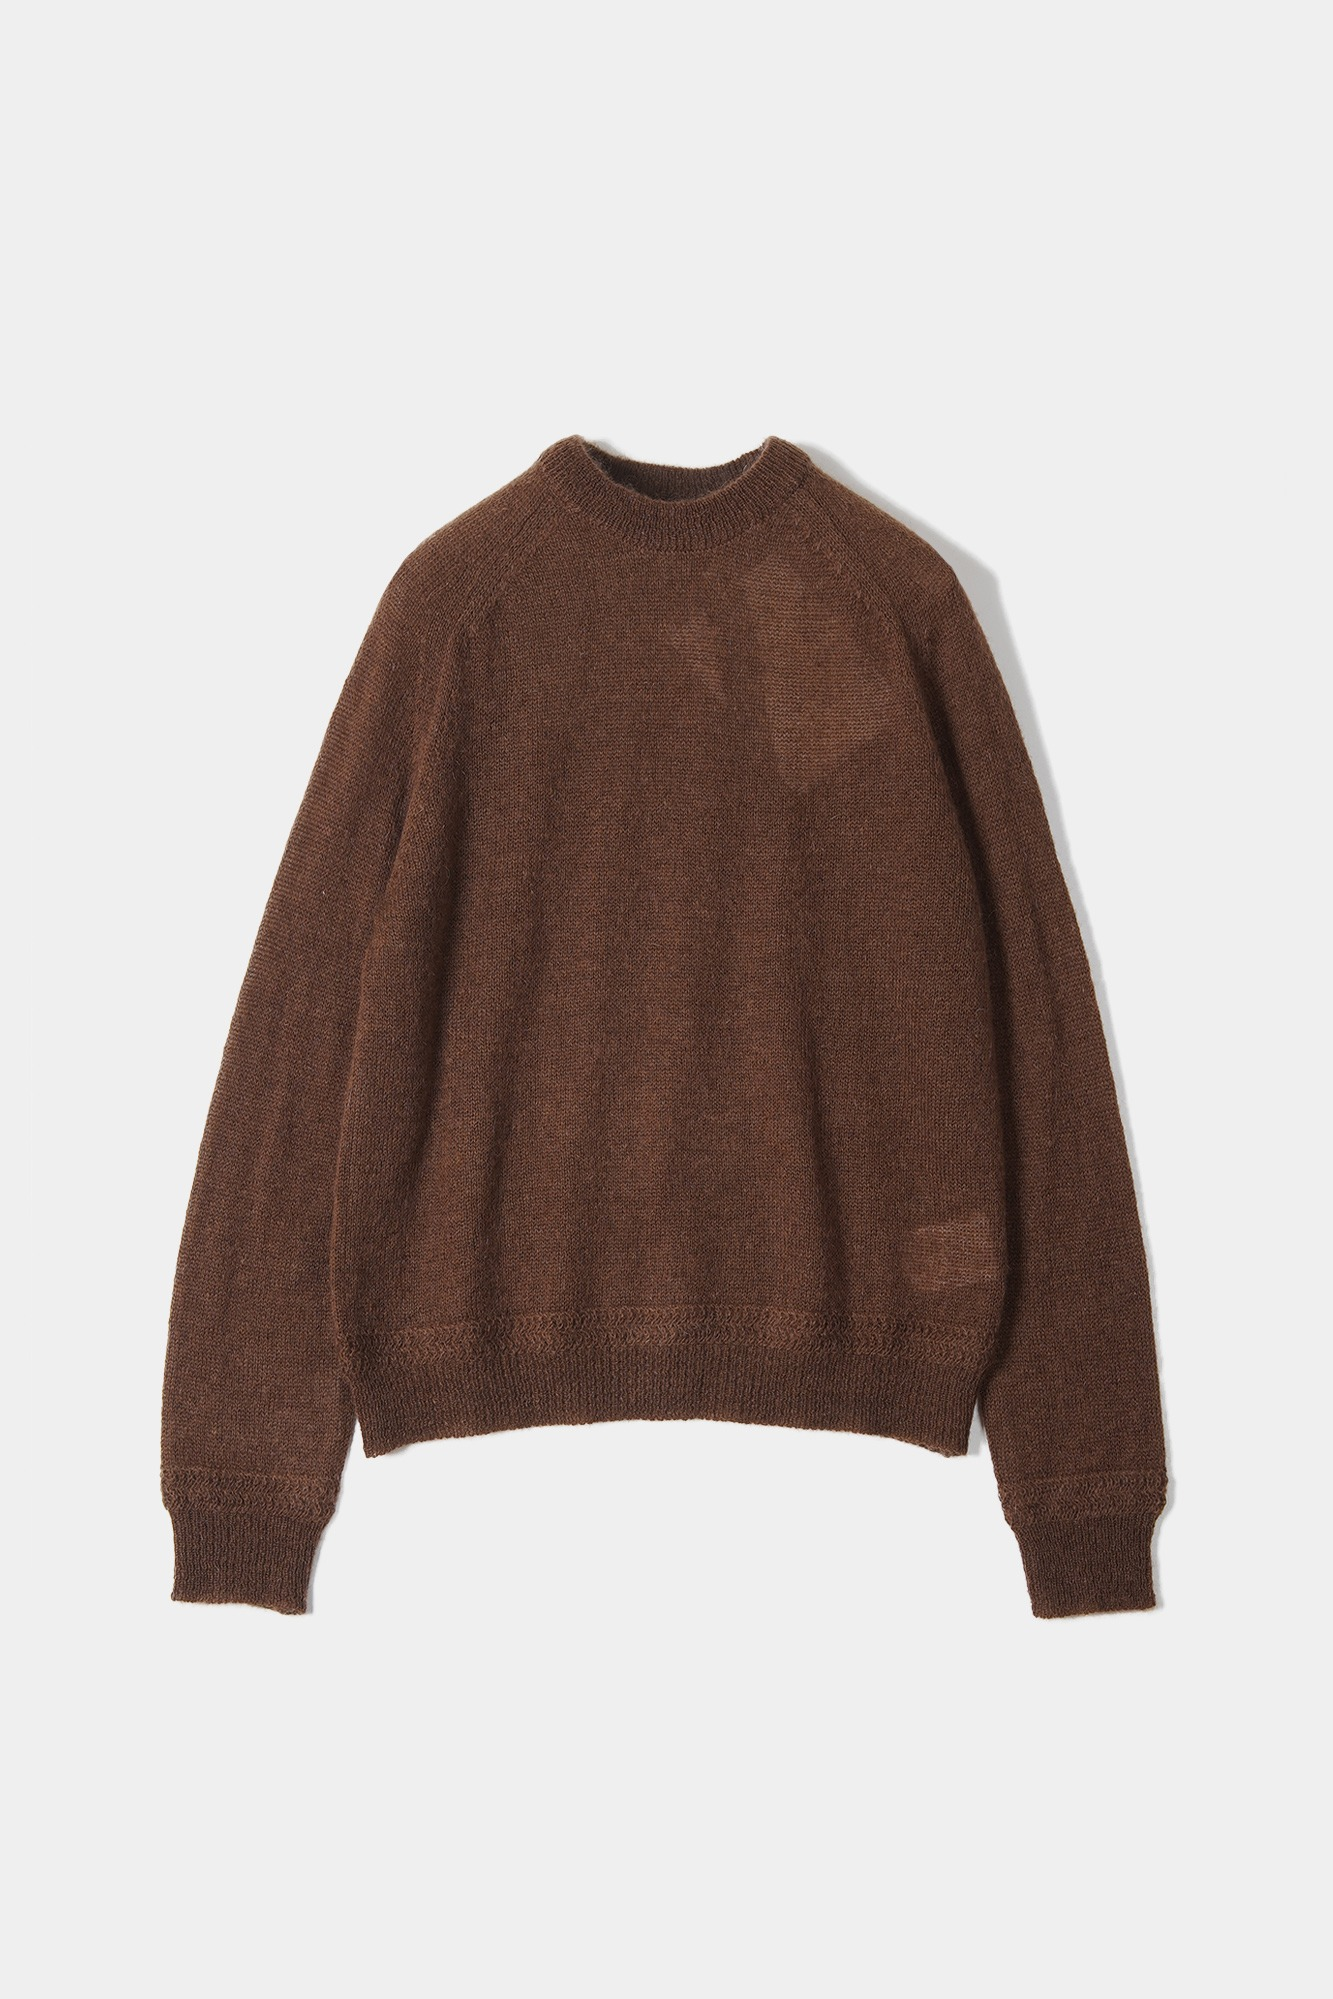 "OOPARTS Mohair boyfriends sweater ""Brownie"""